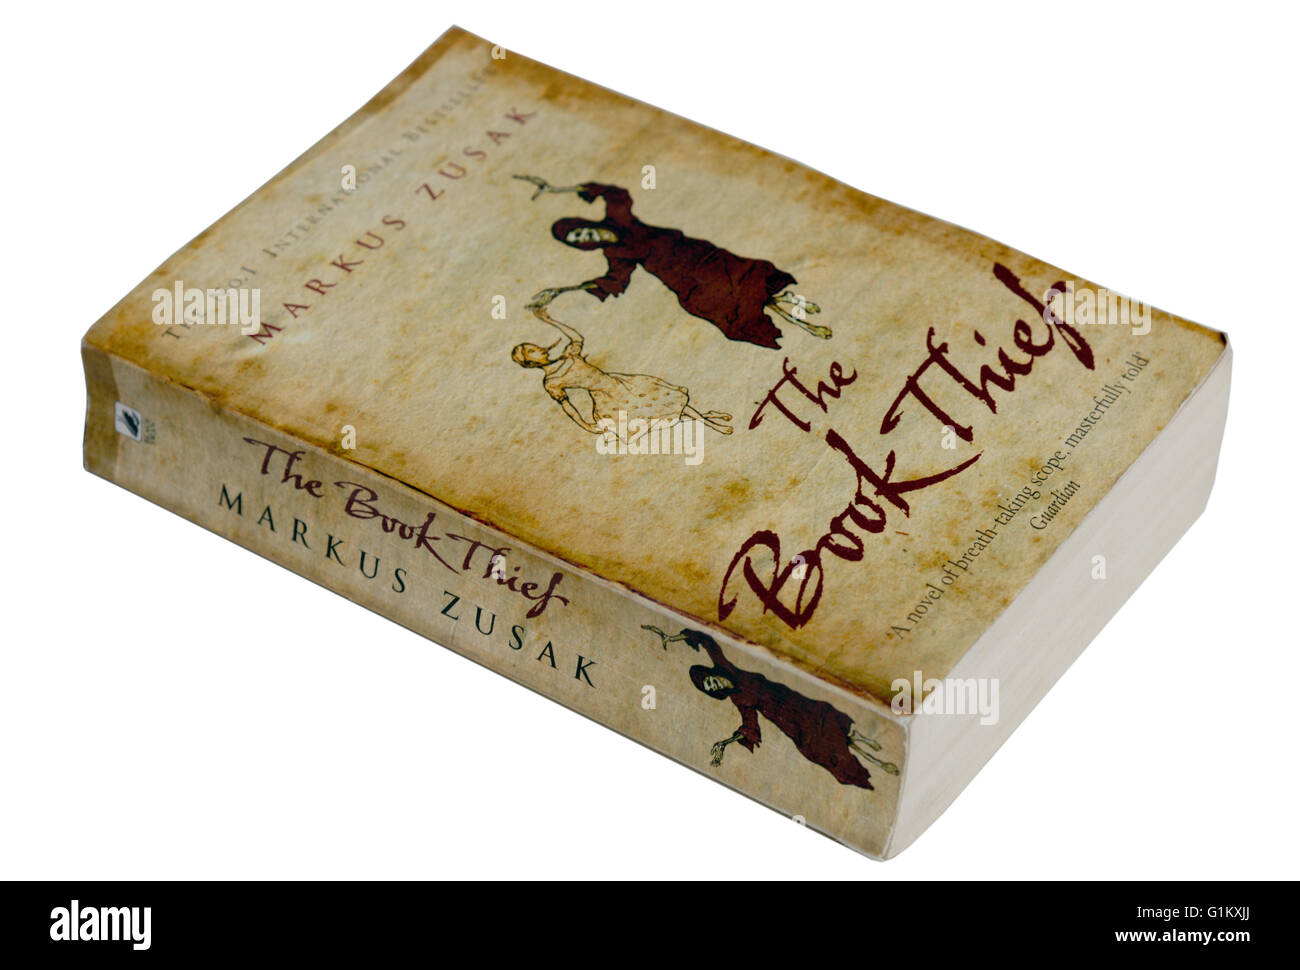 The Book Thief by Markus Zusak Stock Photo